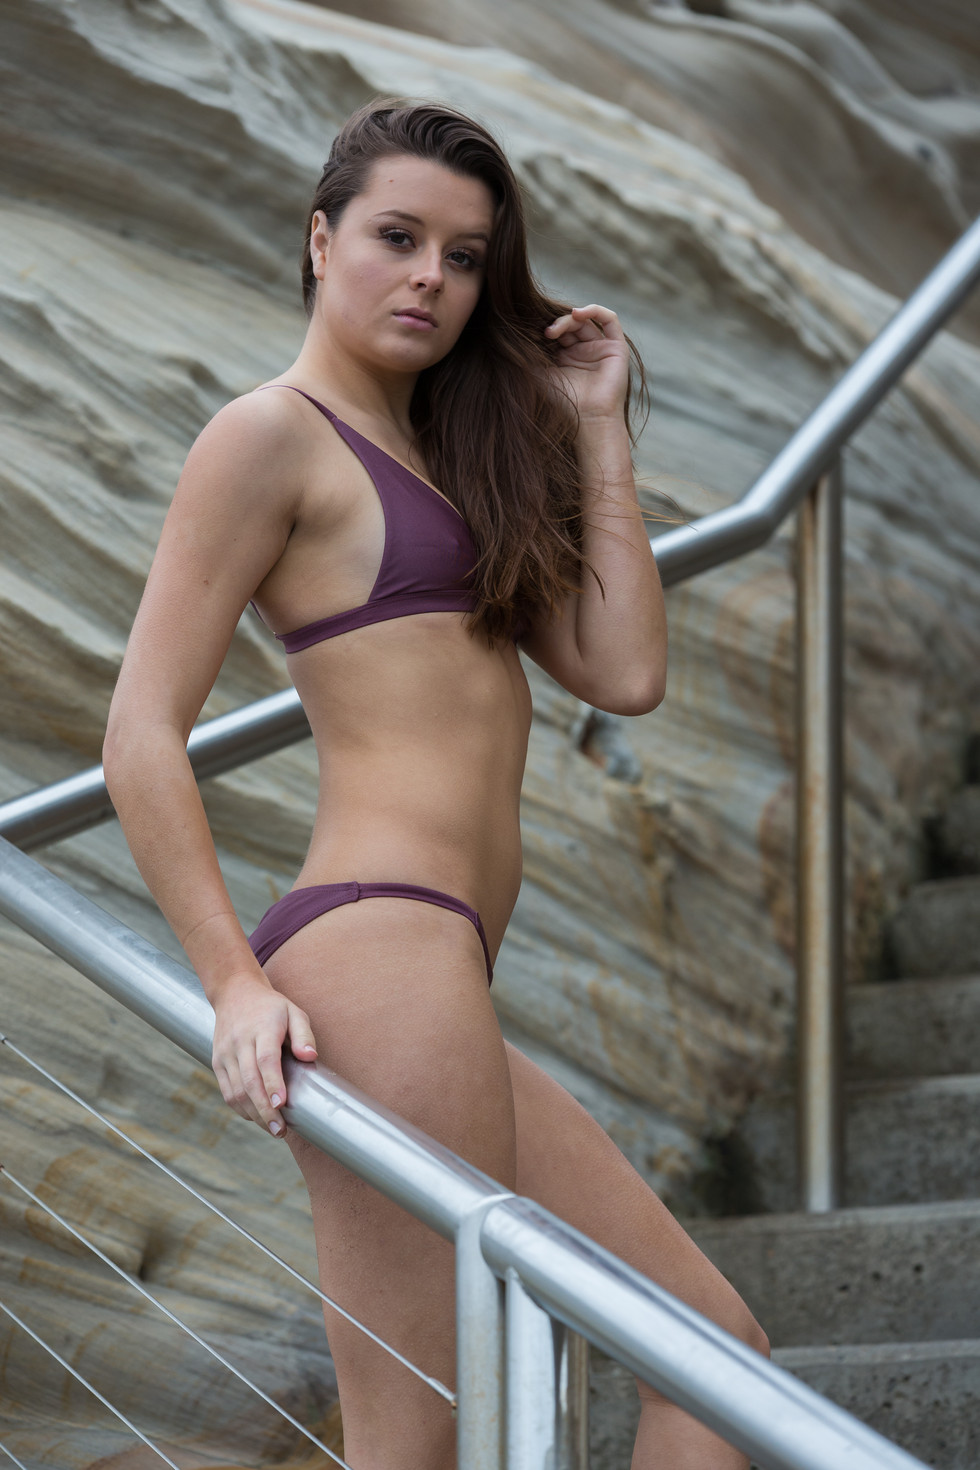 Alecia__by_CoogeePhotography-044782.jpg